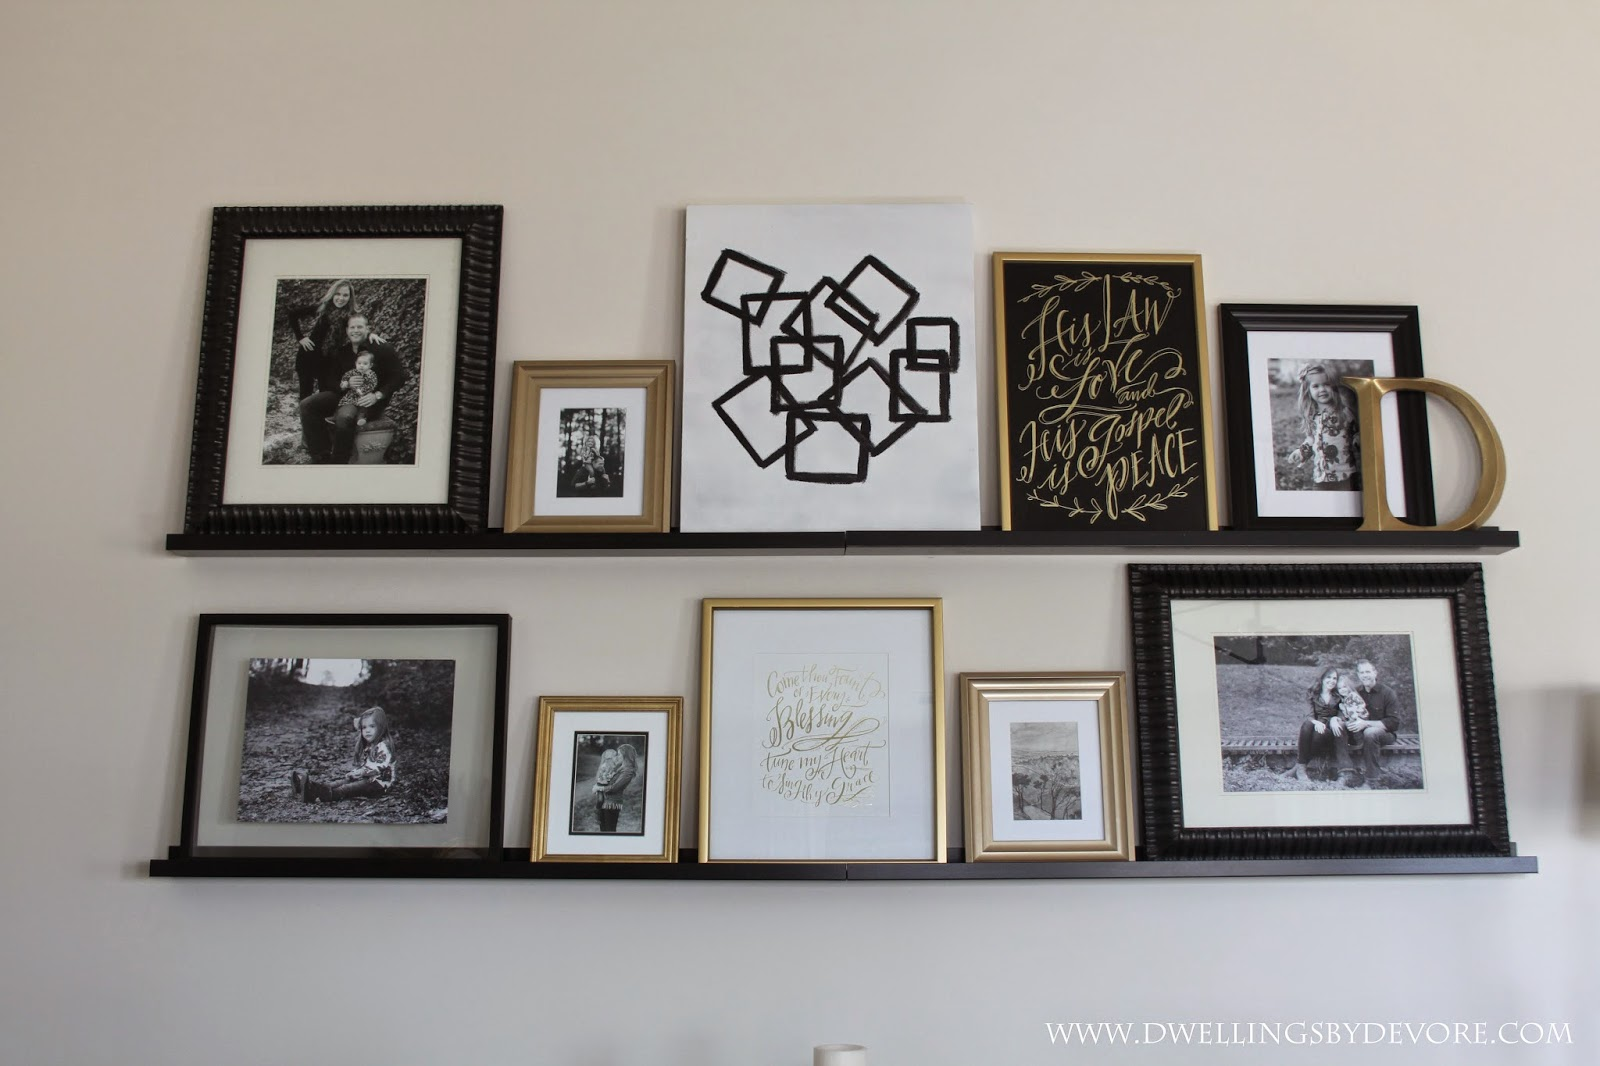 Dwellings by devore picture ledge gallery wall for Gallery wall shelves